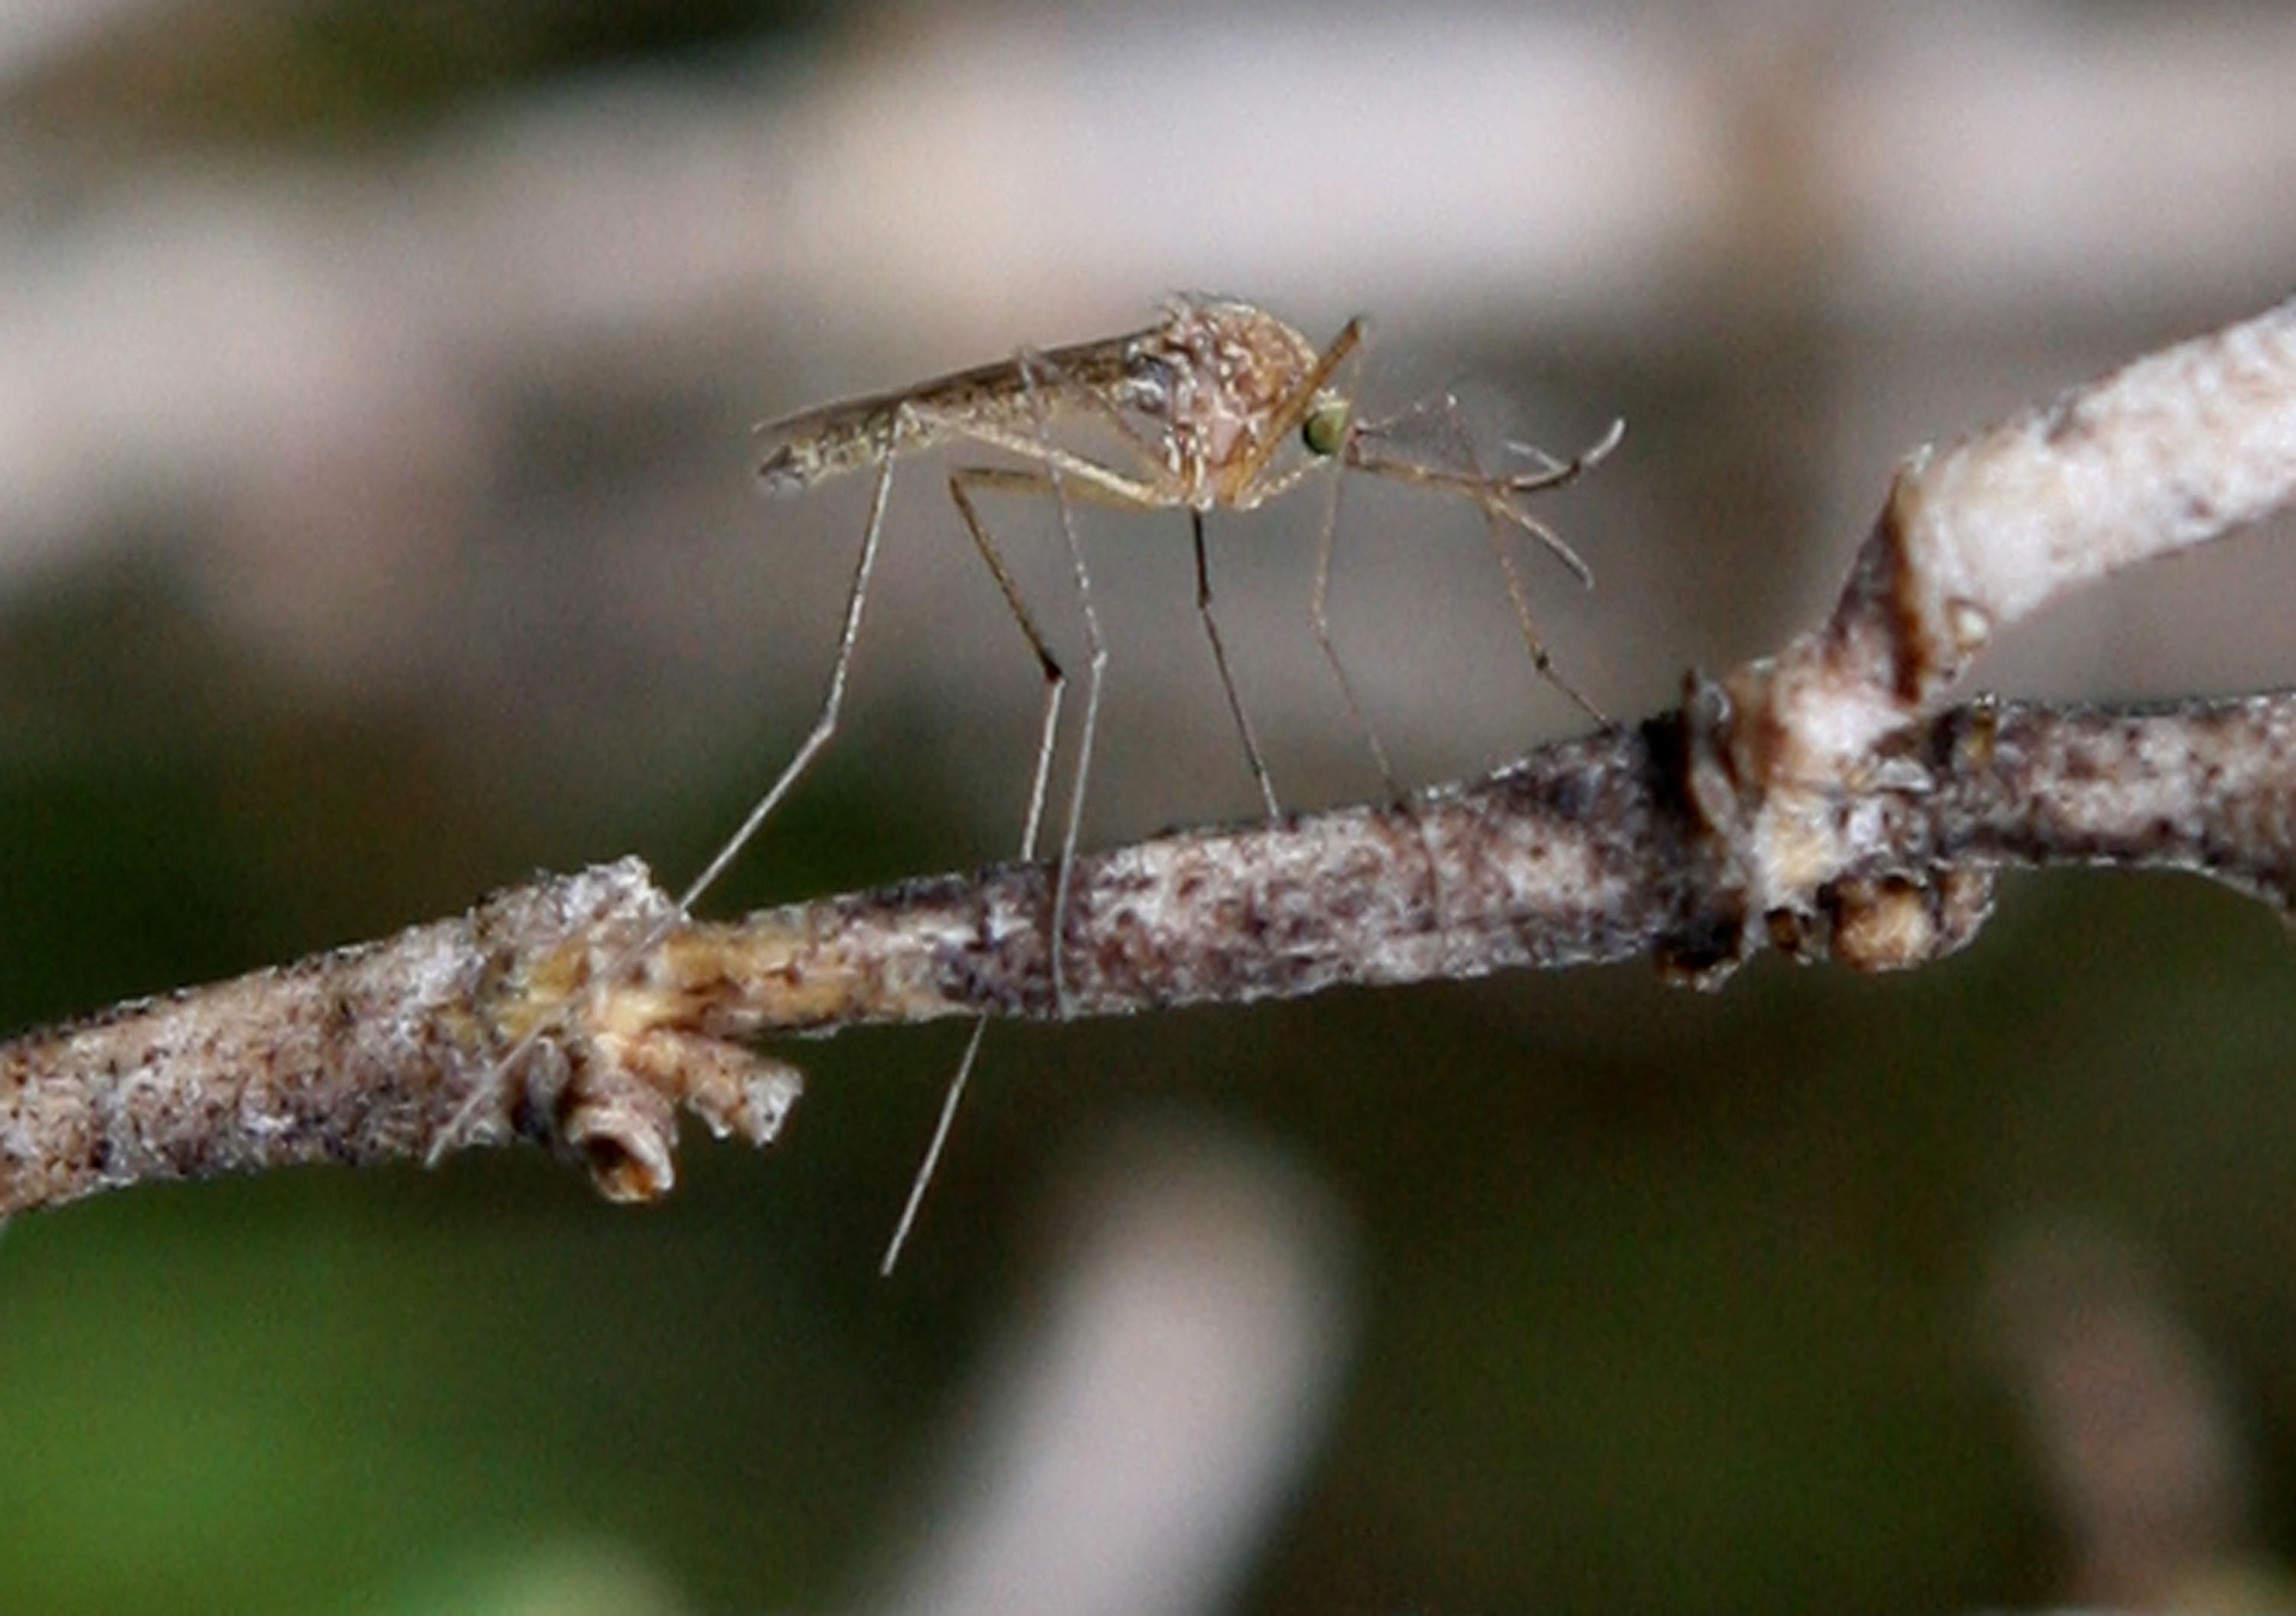 Mosquitoes carrying West Nile virus detected in D.C. area